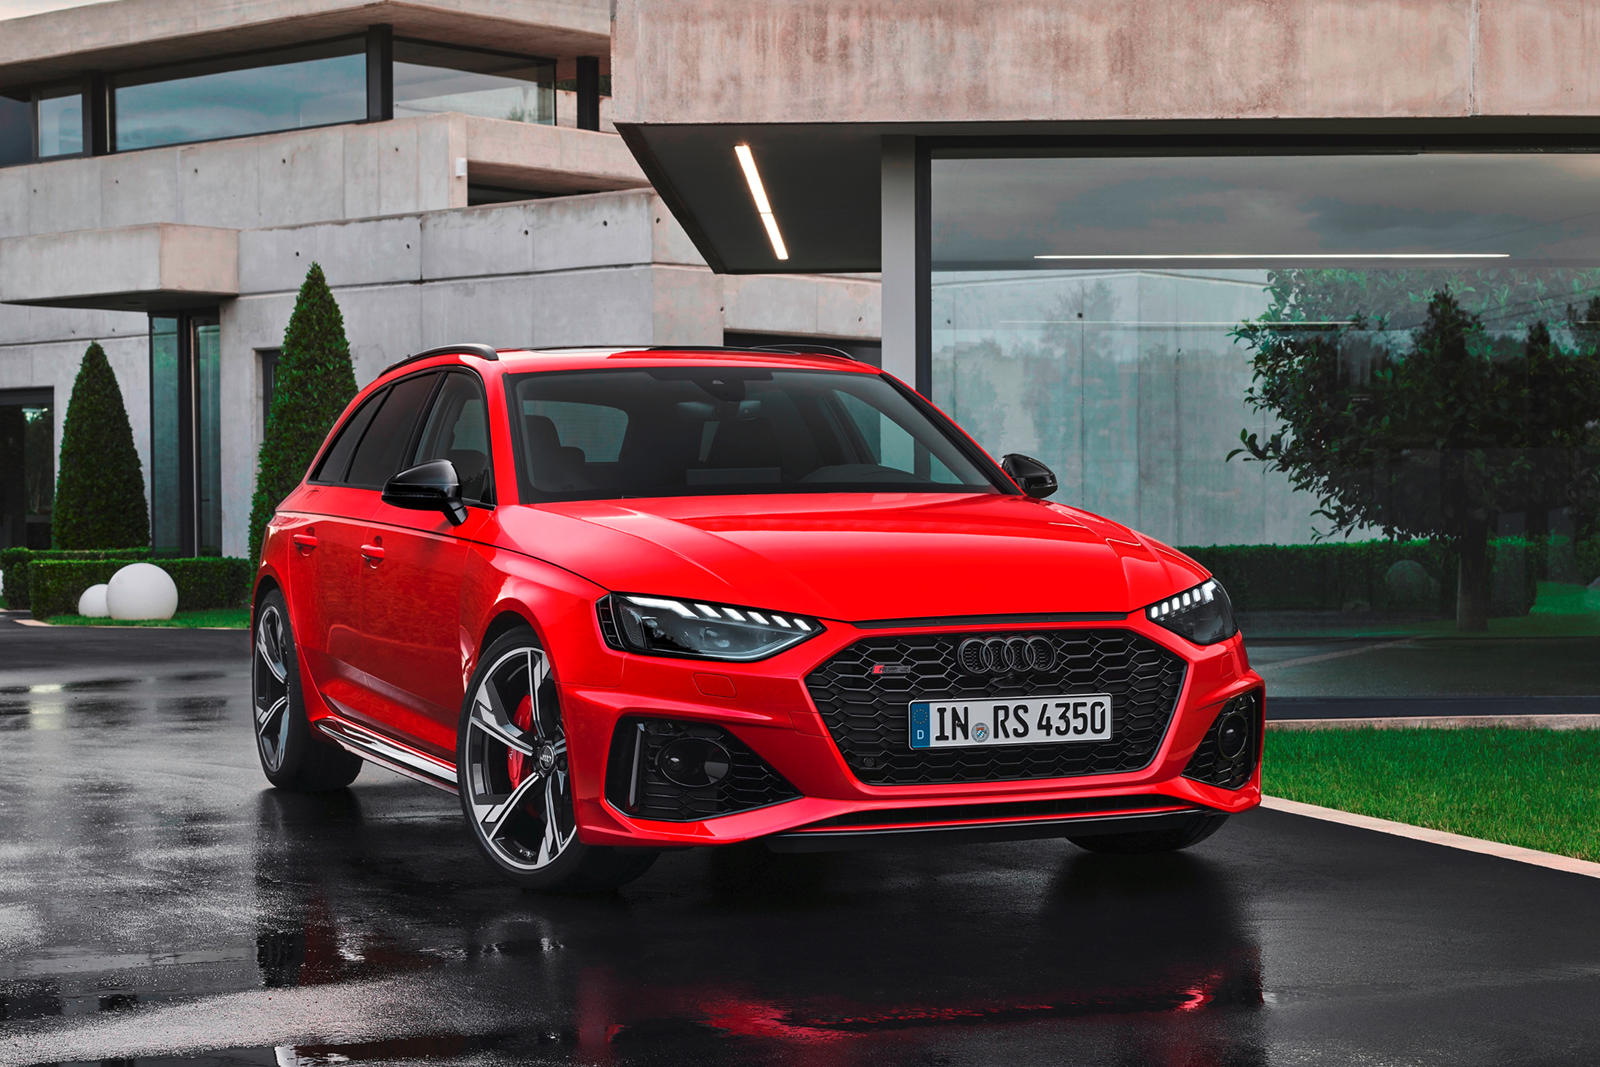 2020 Audi RS4 Avant Is One Wagon We Can't Have | CarBuzz